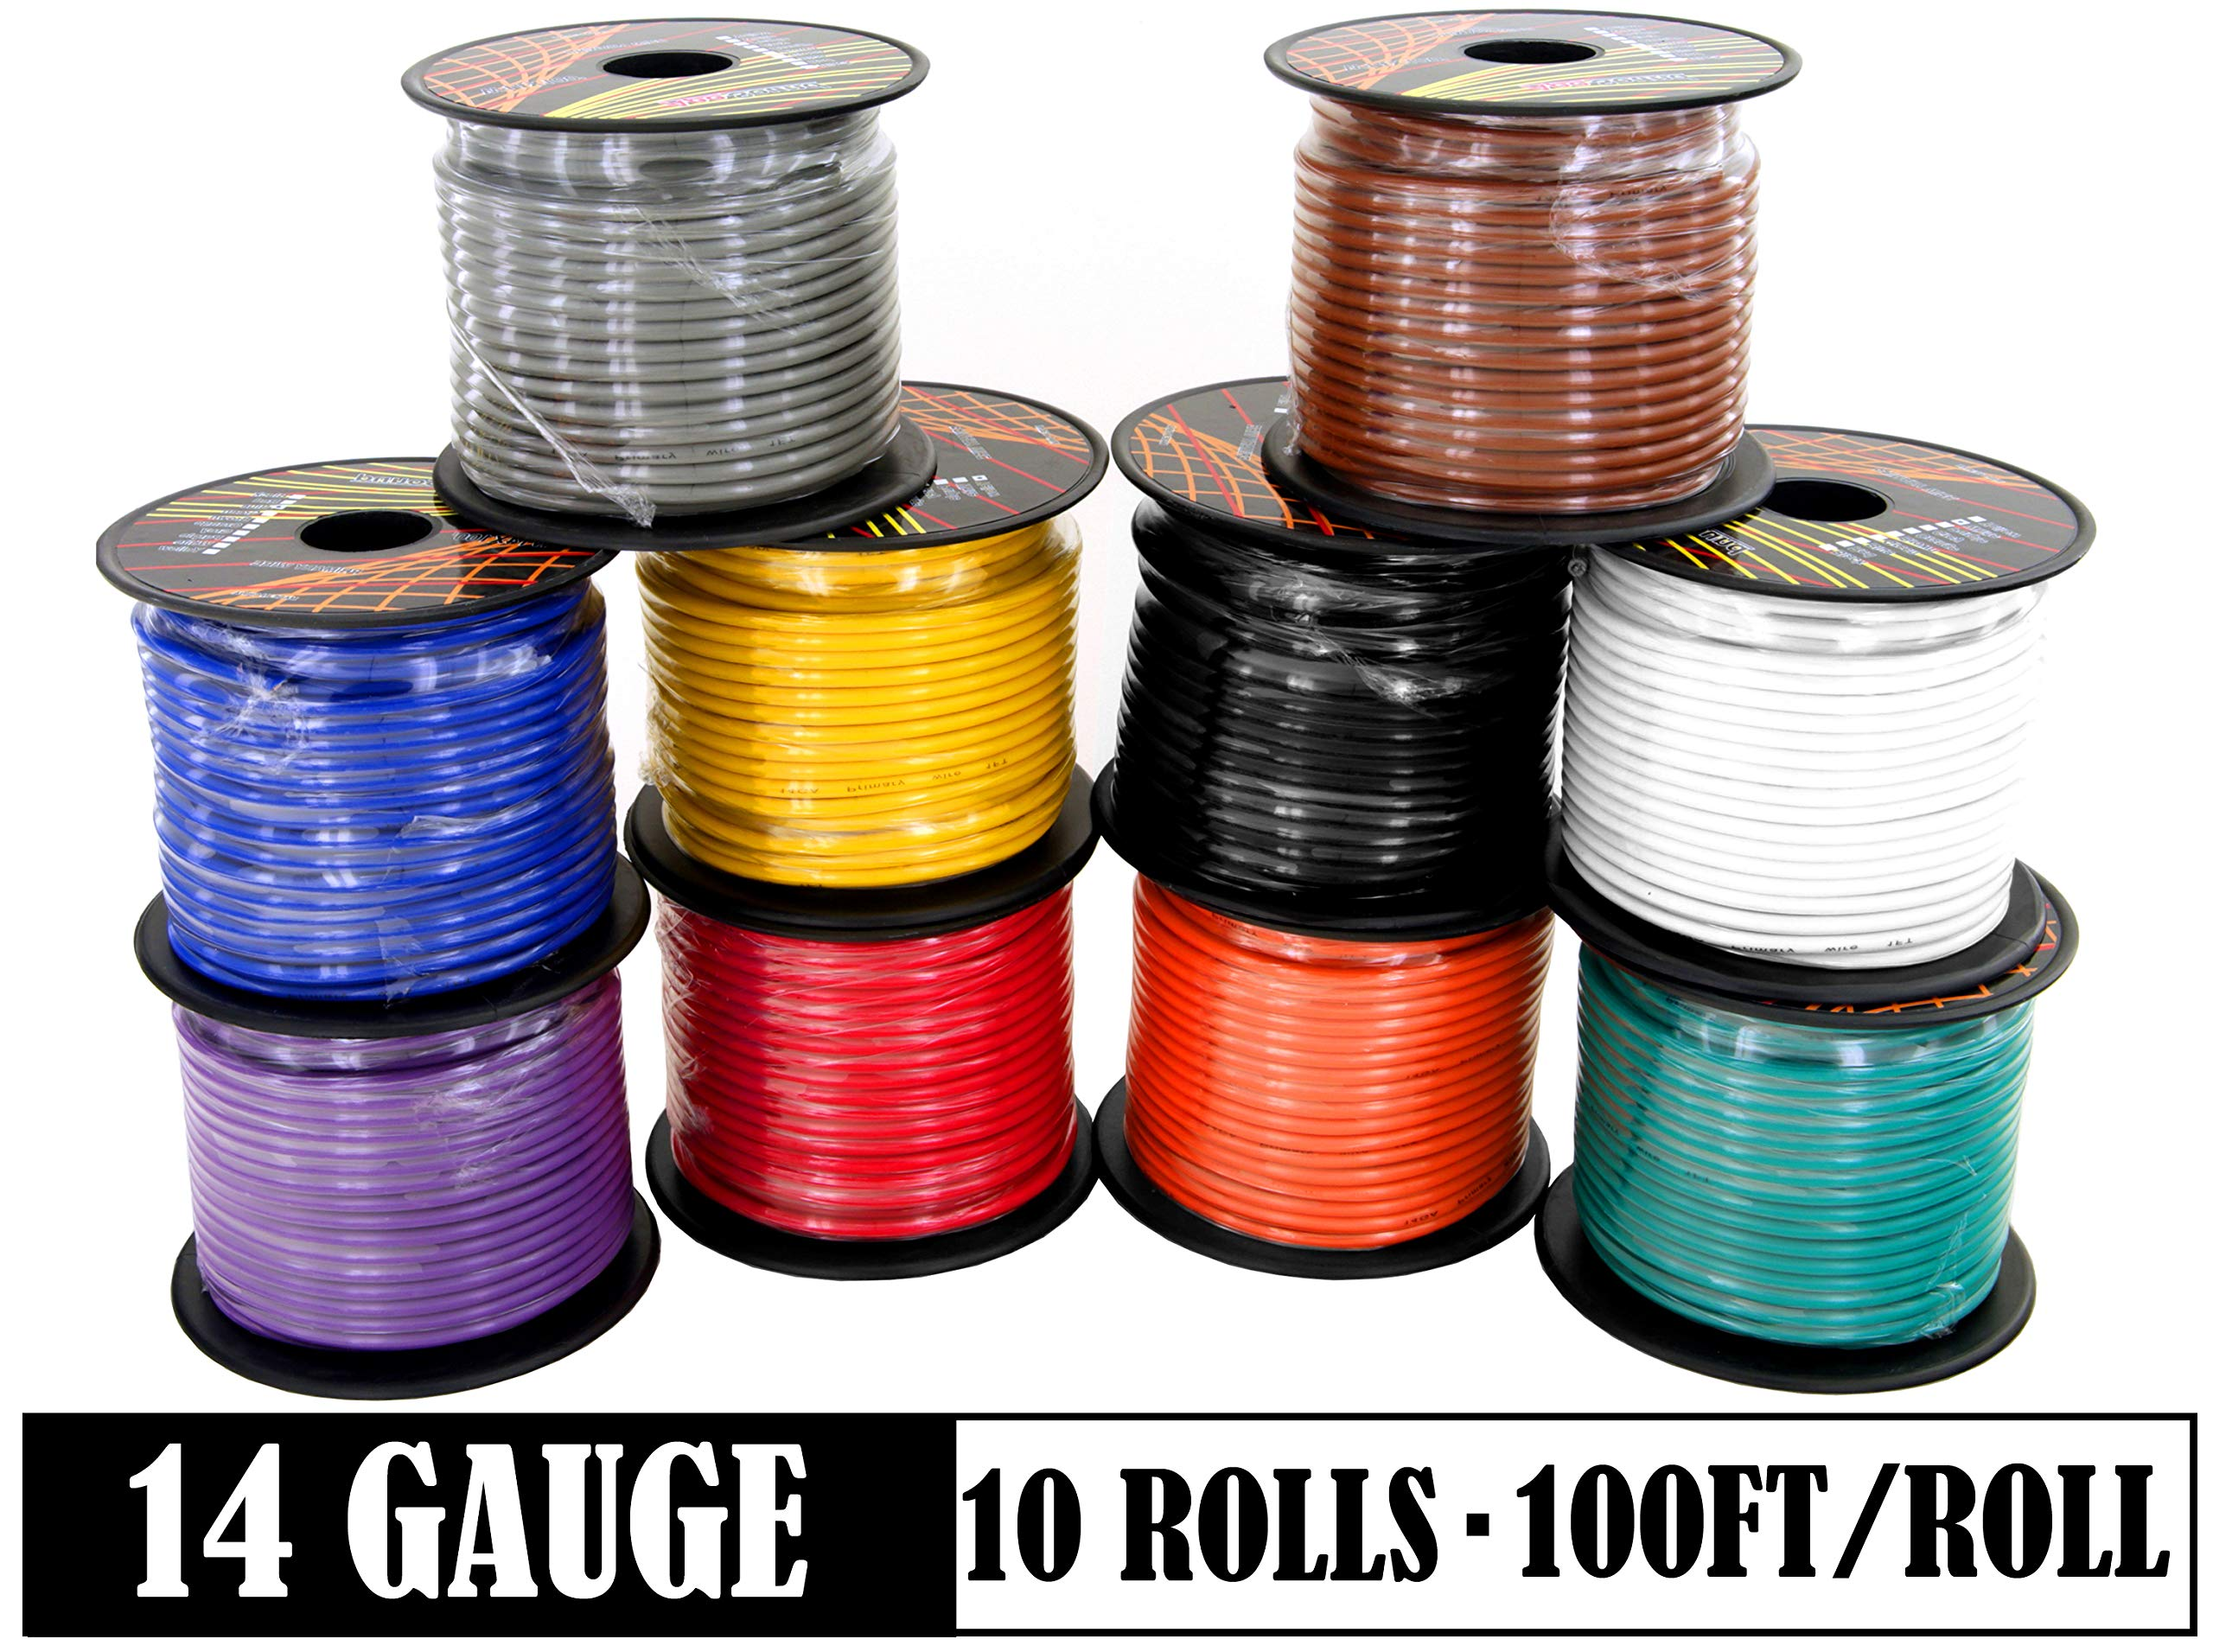 14 Gauge Copper Clad Aluminum Low Voltage Primary Wire in 10 Color Pack, 100 feet Roll (1000 feet Total) for 12V Automotive Harness Car Video Stereo Wiring. Also in 4 Color Set by GS Power